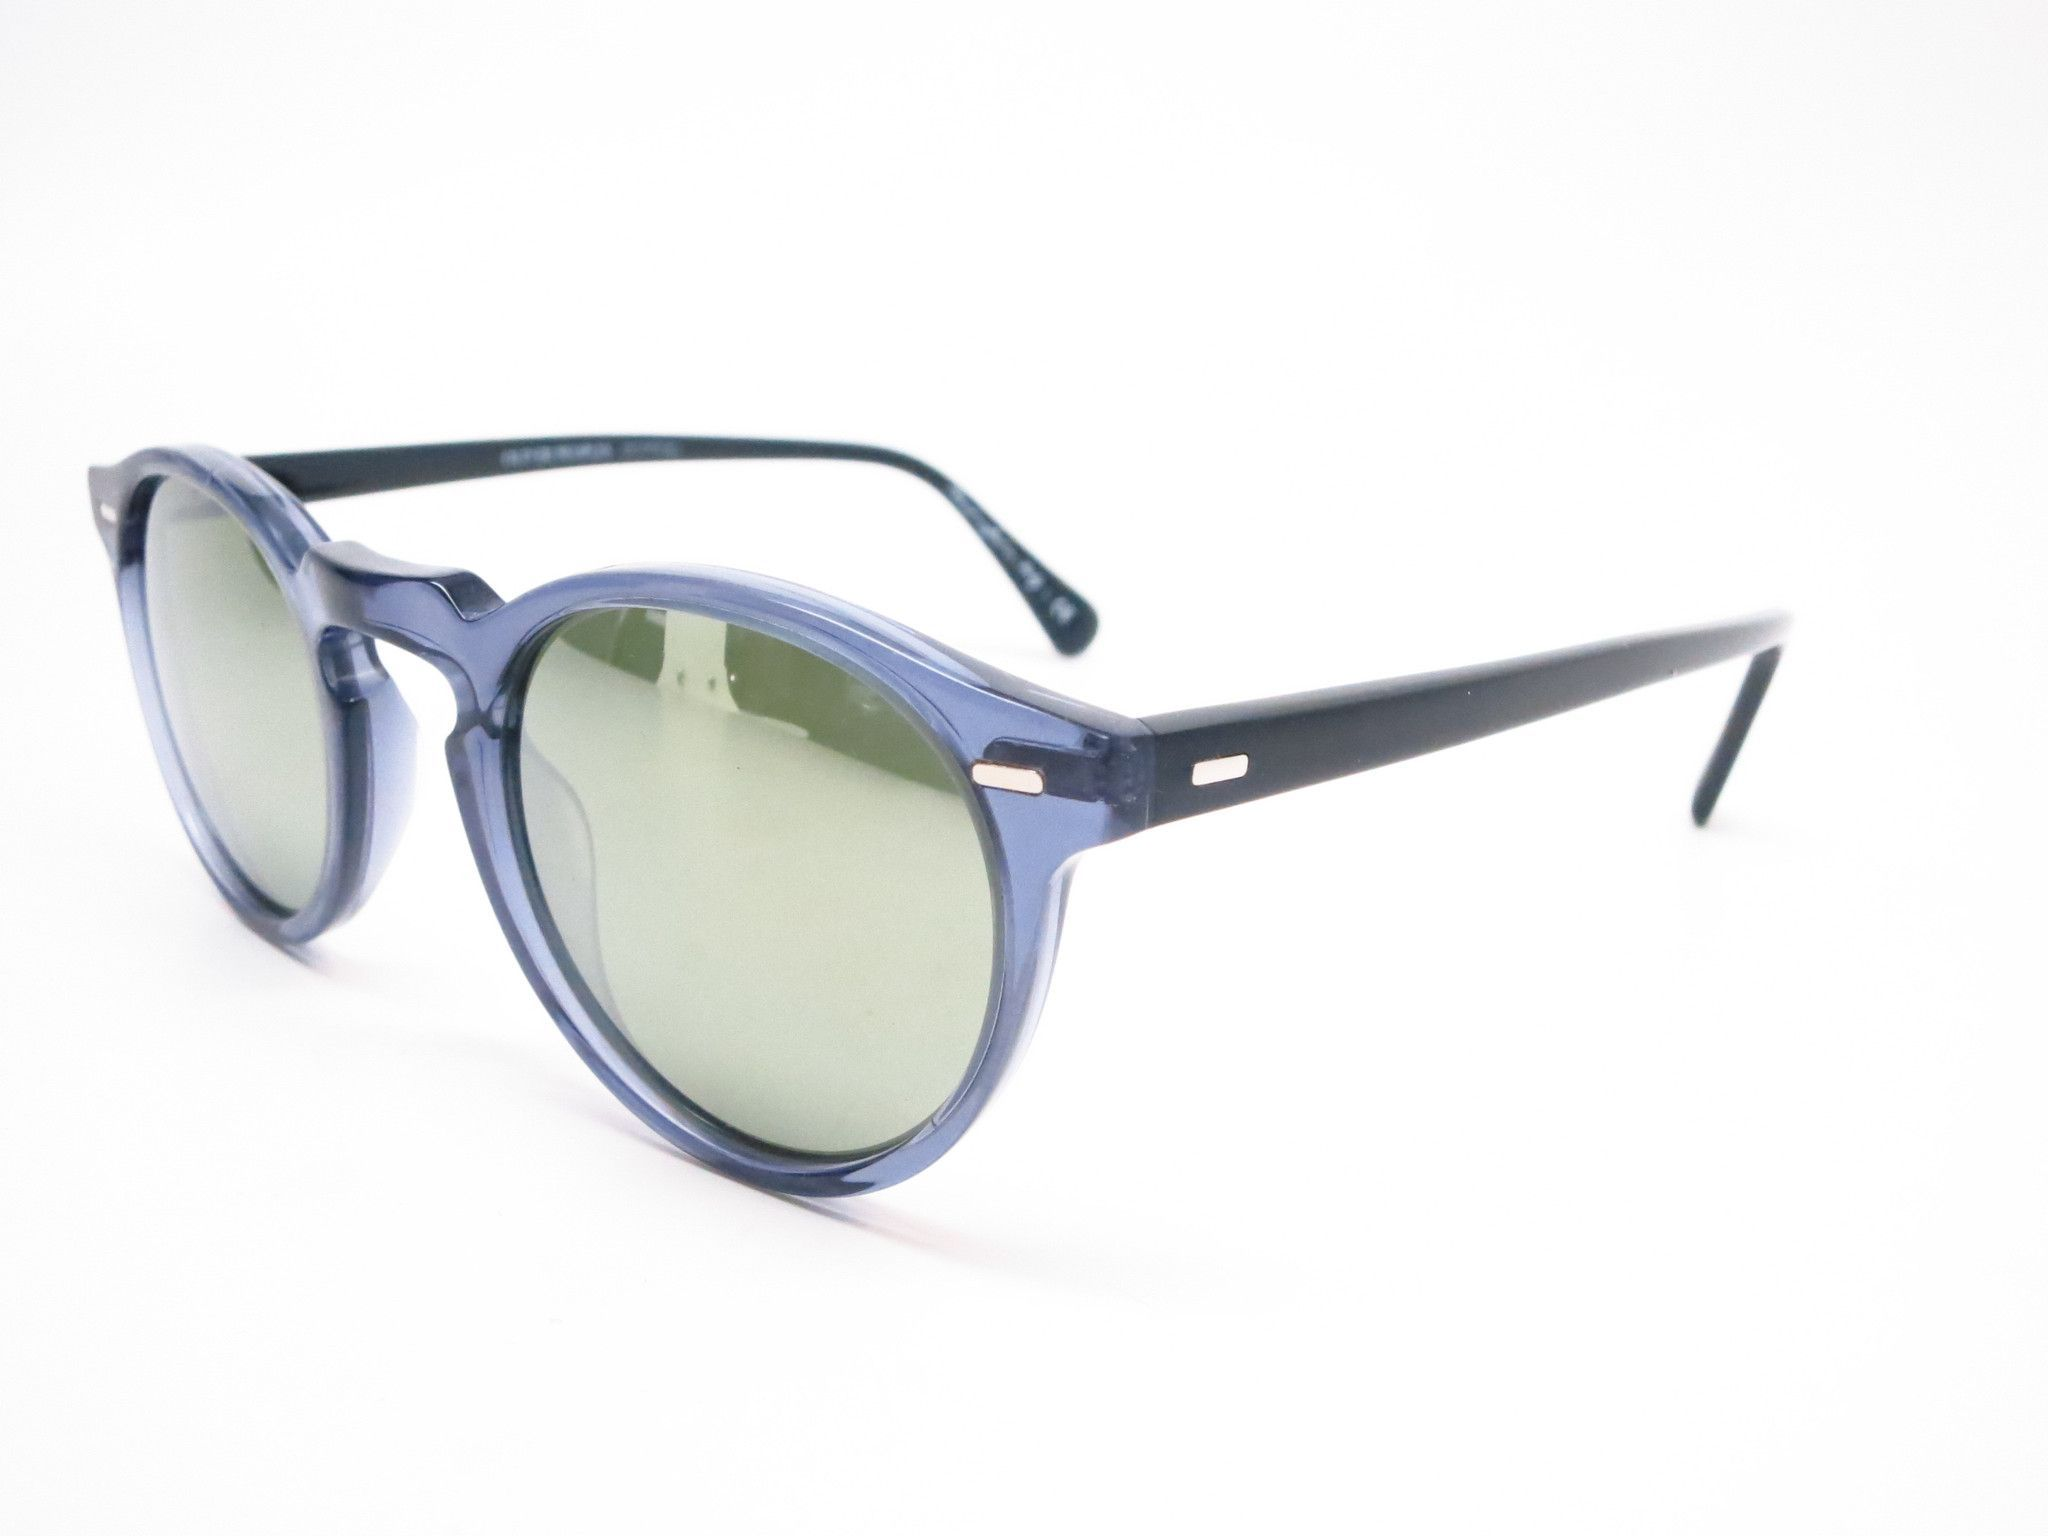 Oliver Peoples Gregory Peck Ov 5217 1563 5c Denim Blue Black Sunglasses With Images Black Sunglasses Sunglasses Oliver Peoples Sunglasses